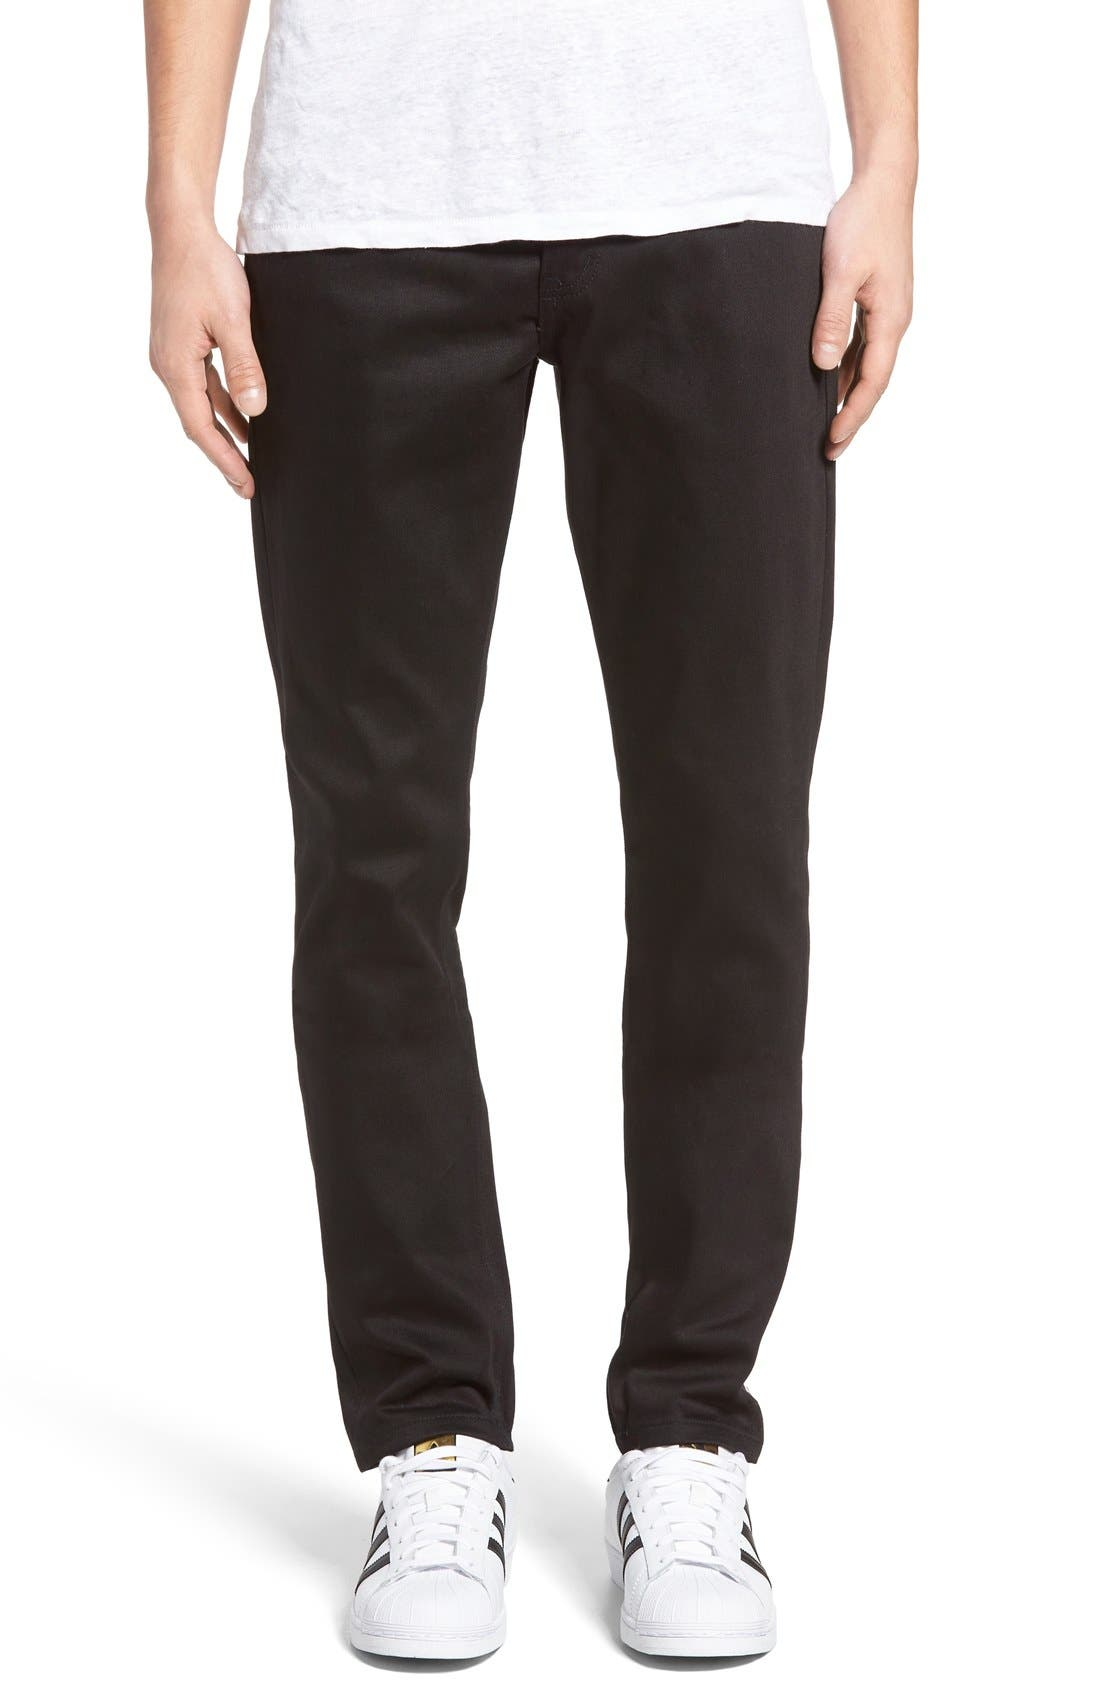 UB455 Selvedge Skinny Fit Jeans,                         Main,                         color, 001